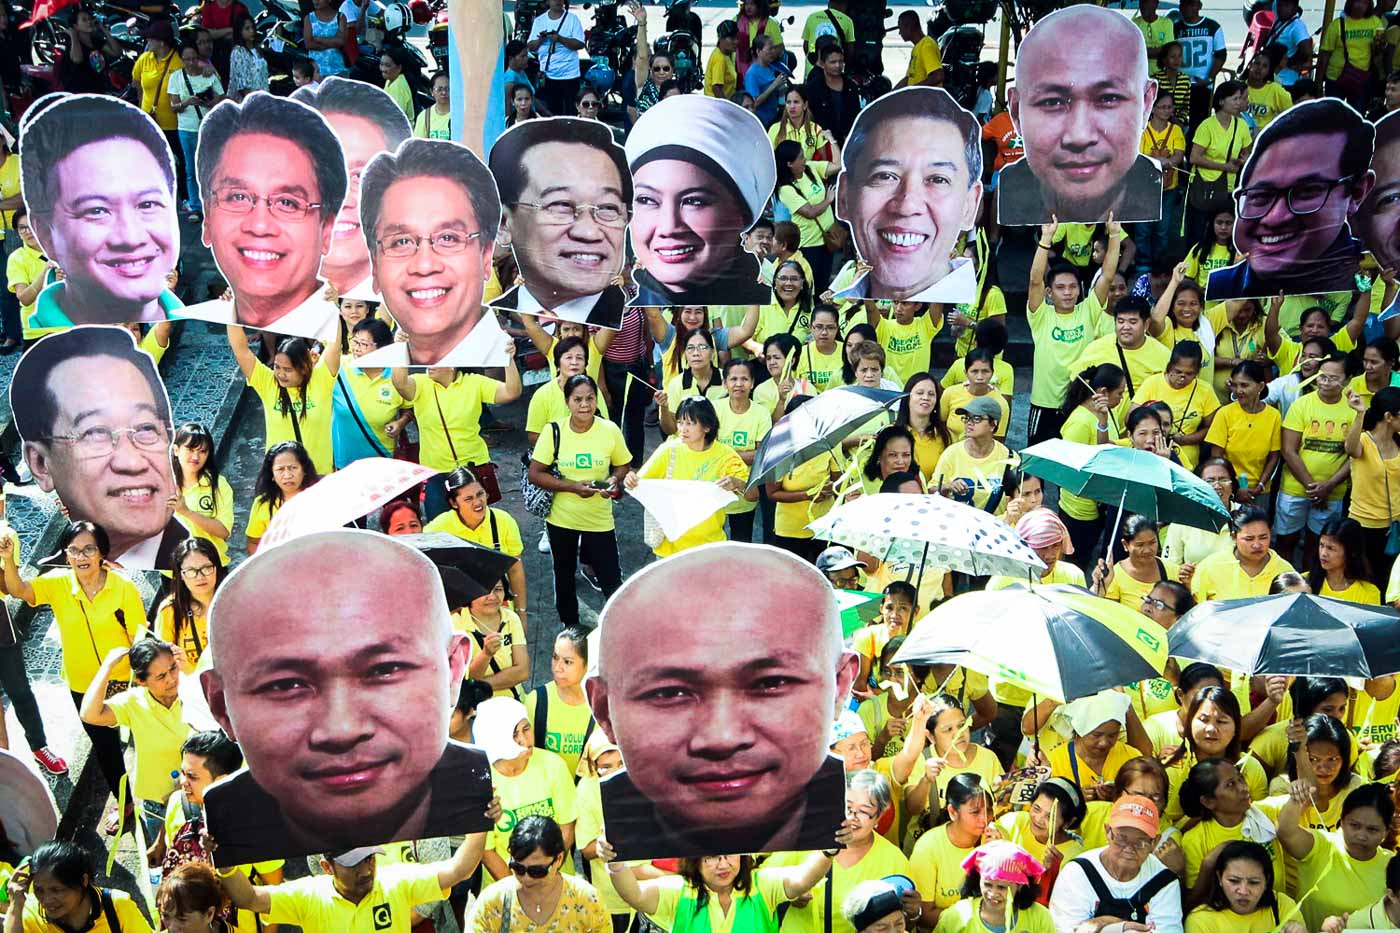 u2018PEOPLEu2019S CAMPAIGN.u2019 Supporters carry images of the 7 senatorial bets of the Oposisyon Koalisyon on October 24, 2018. Photo by Darren Langit/Rappler